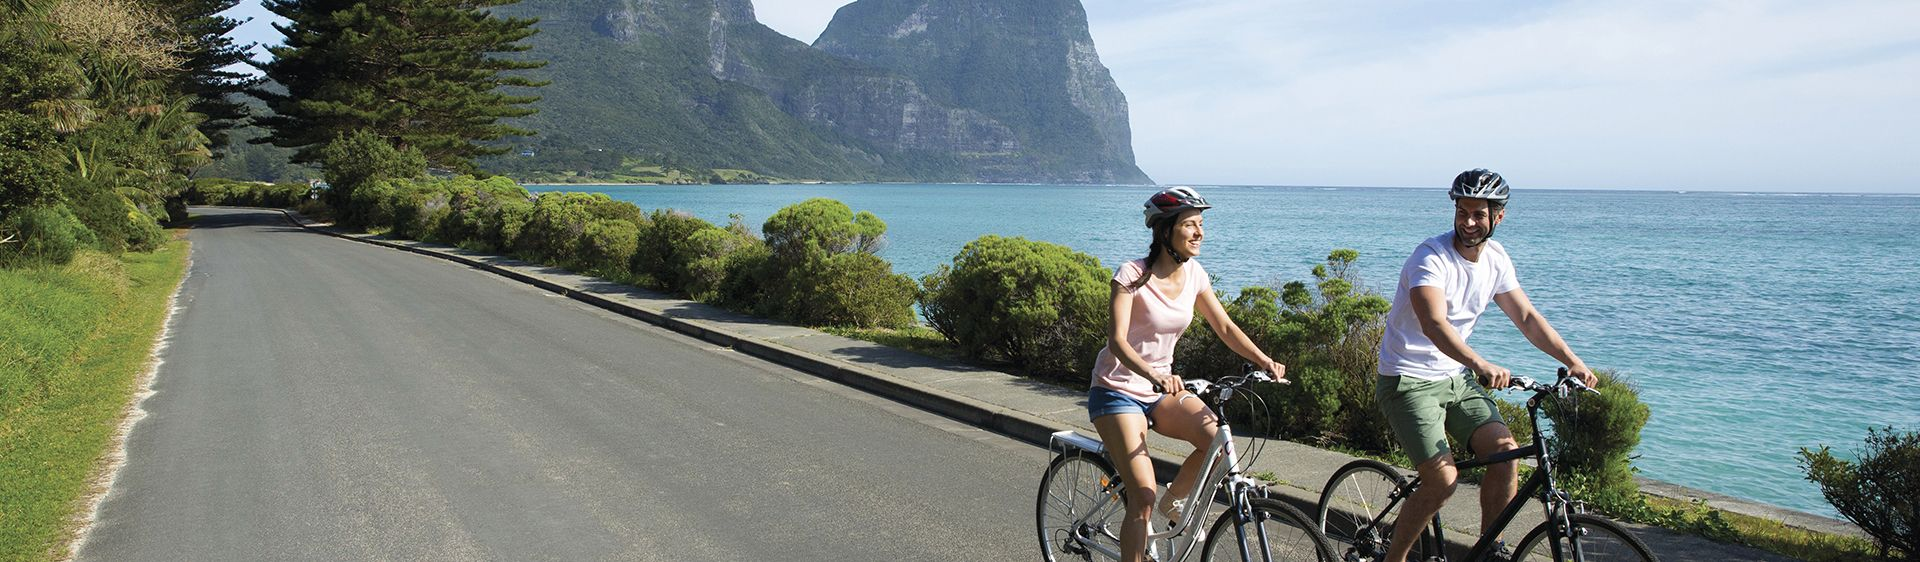 Couple enjoying a relaxing and scenic bike ride on Lord Howe Island.